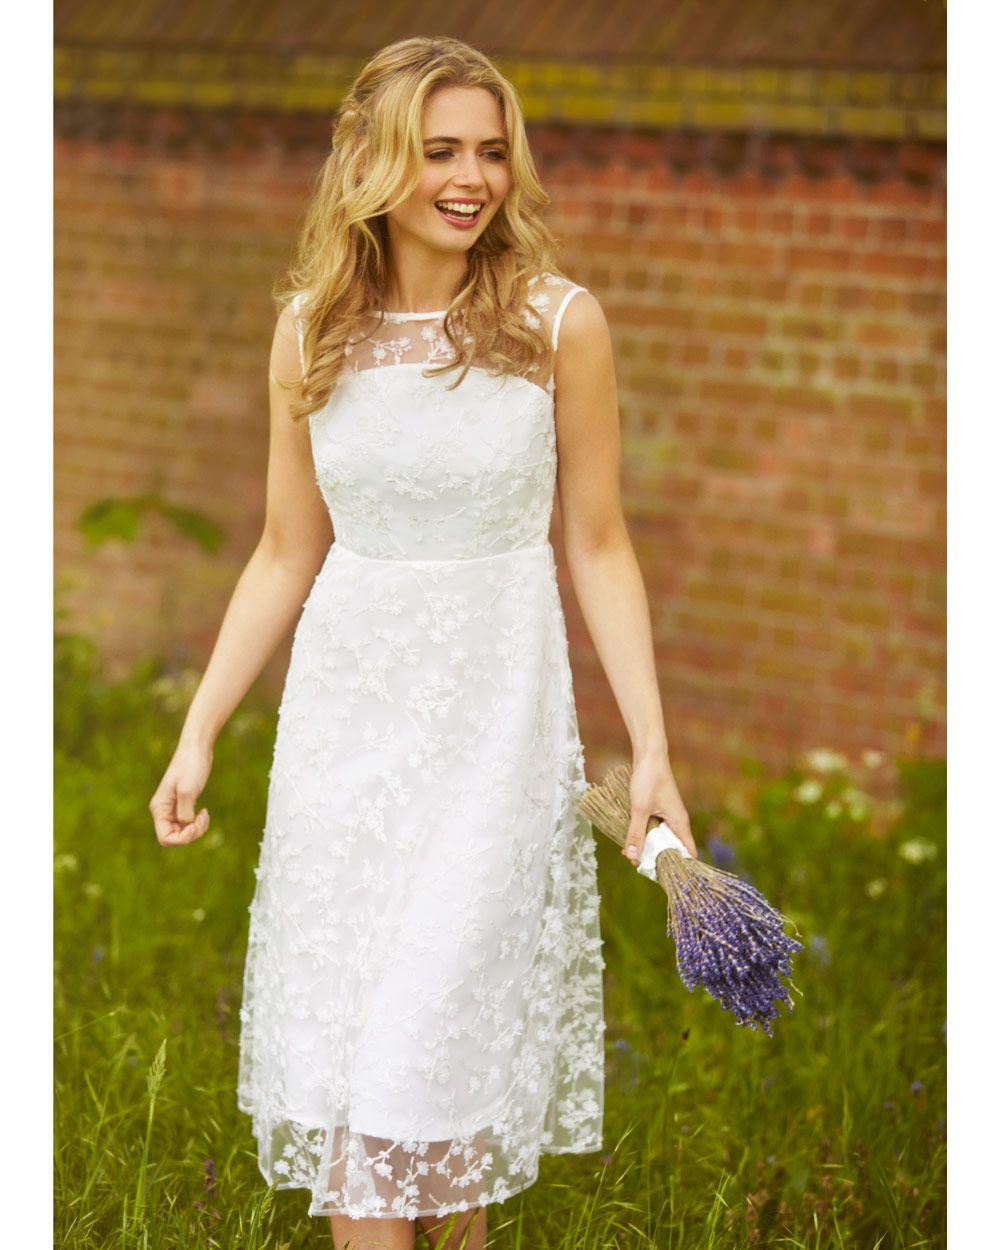 f8293c9082a5c Azalia Midi Dress from Alie Street - This pretty, feminine and simple lace  dress ensures the bride takes centre stage.